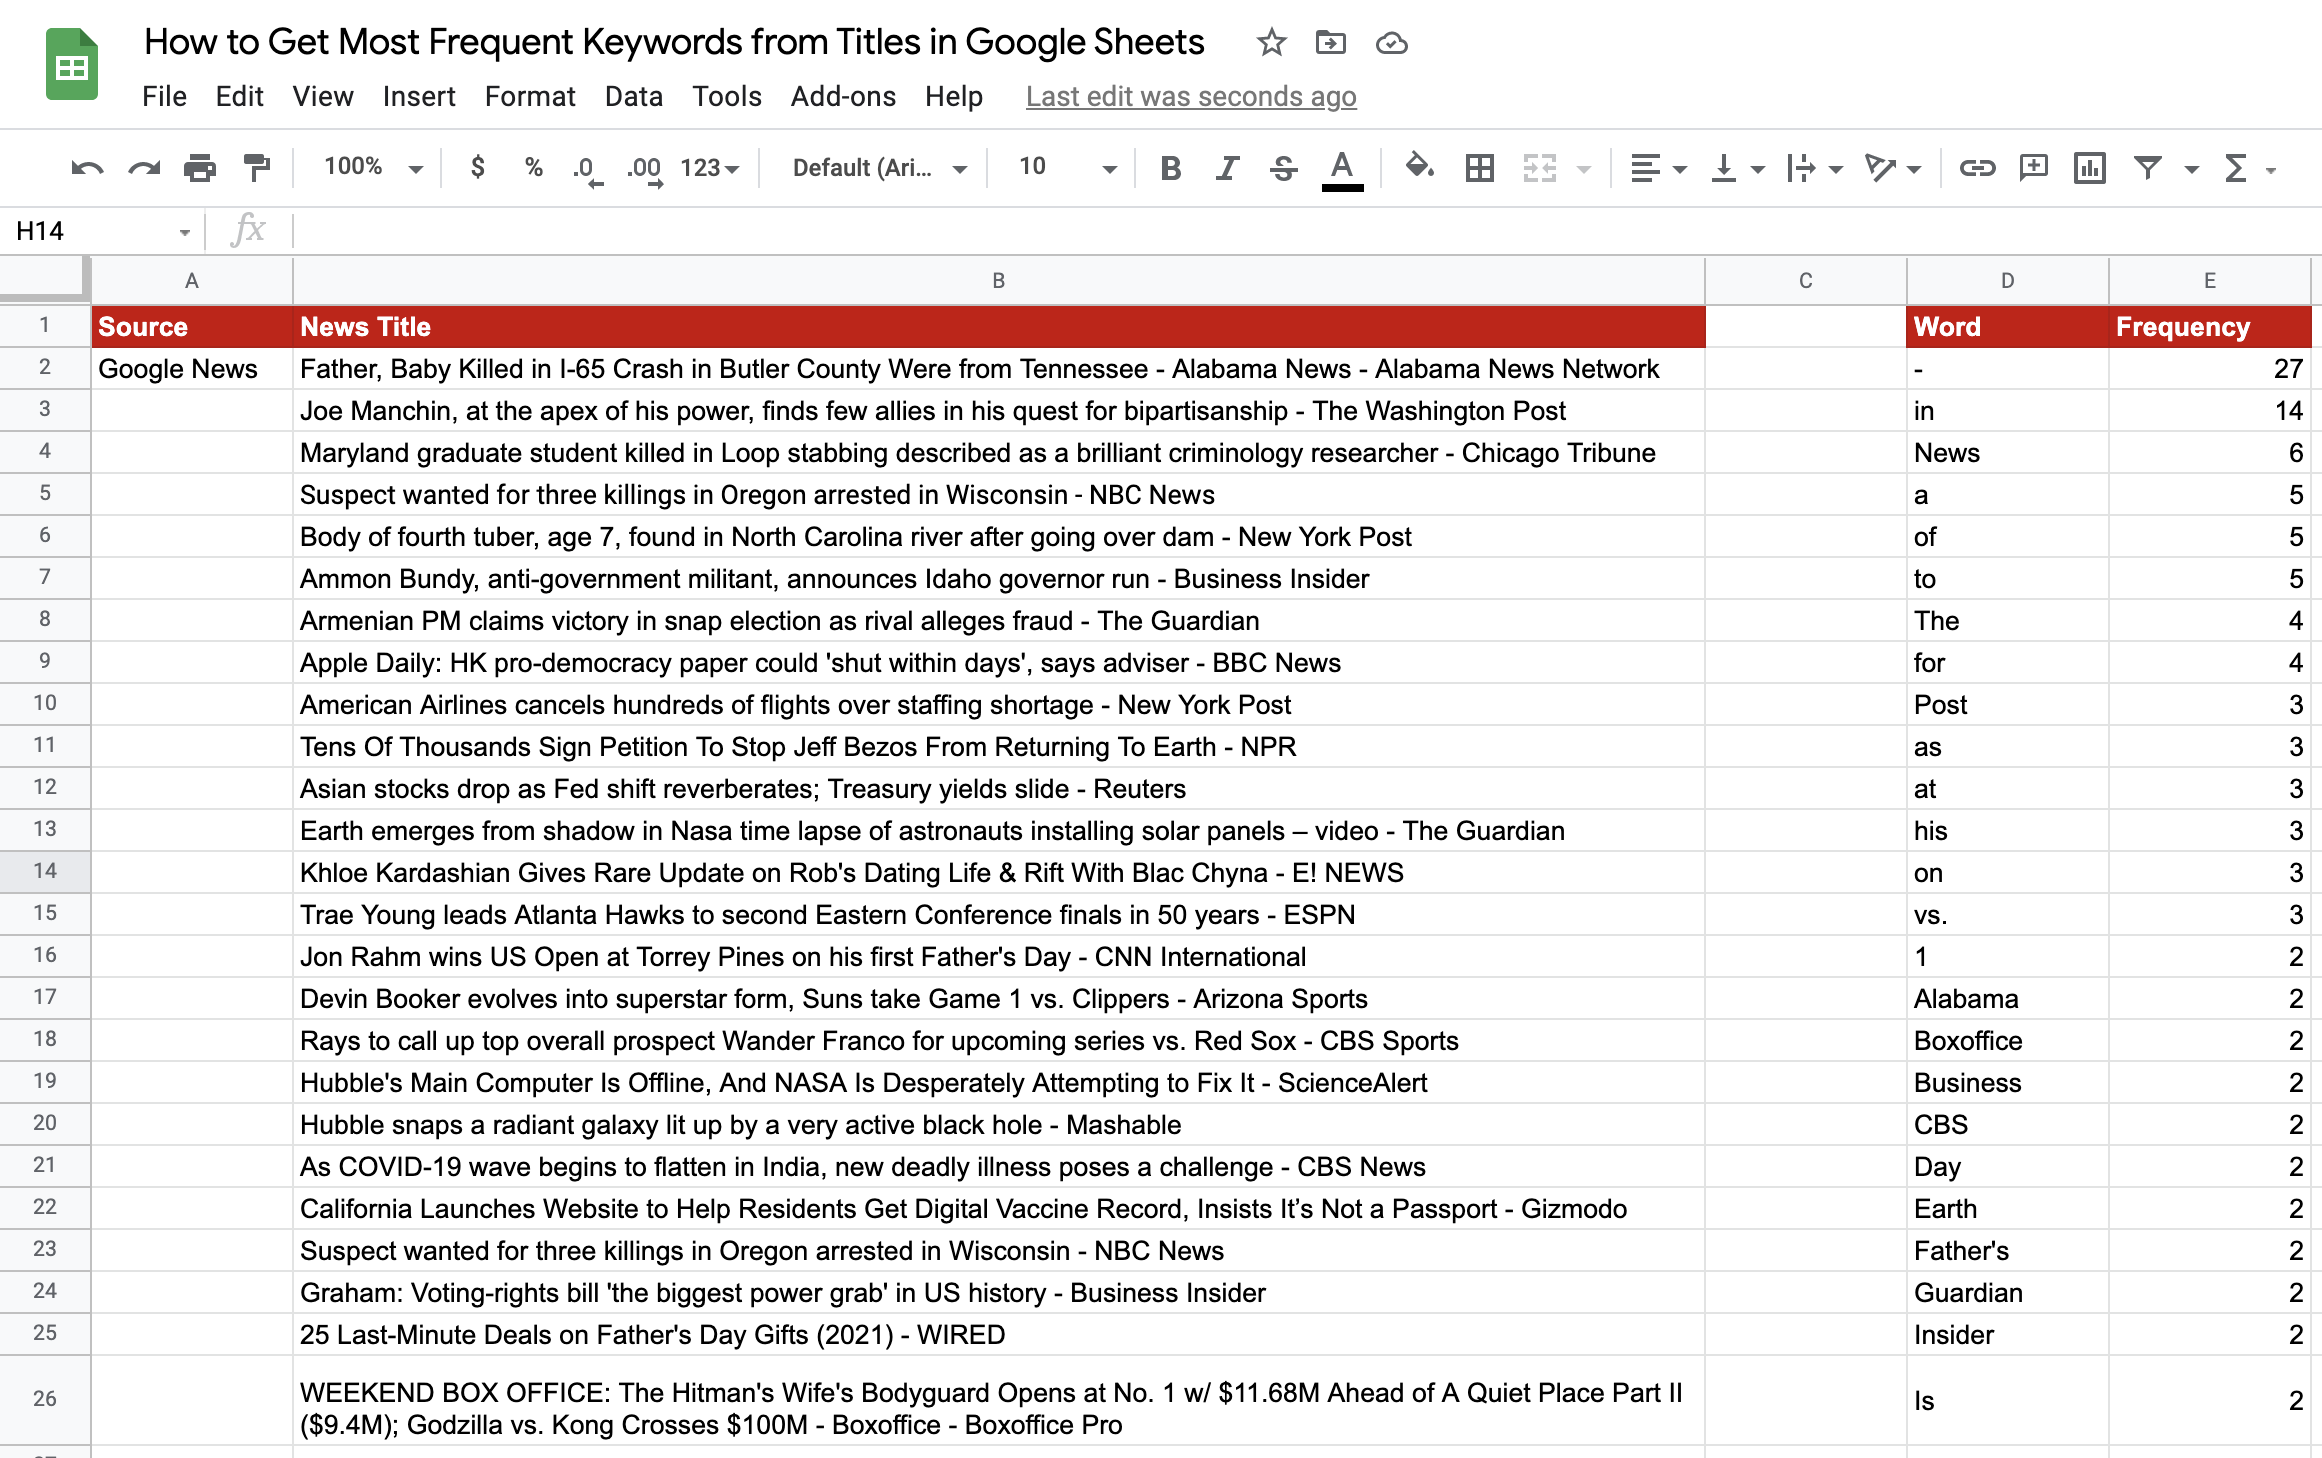 Frequent keywords in Google Sheets